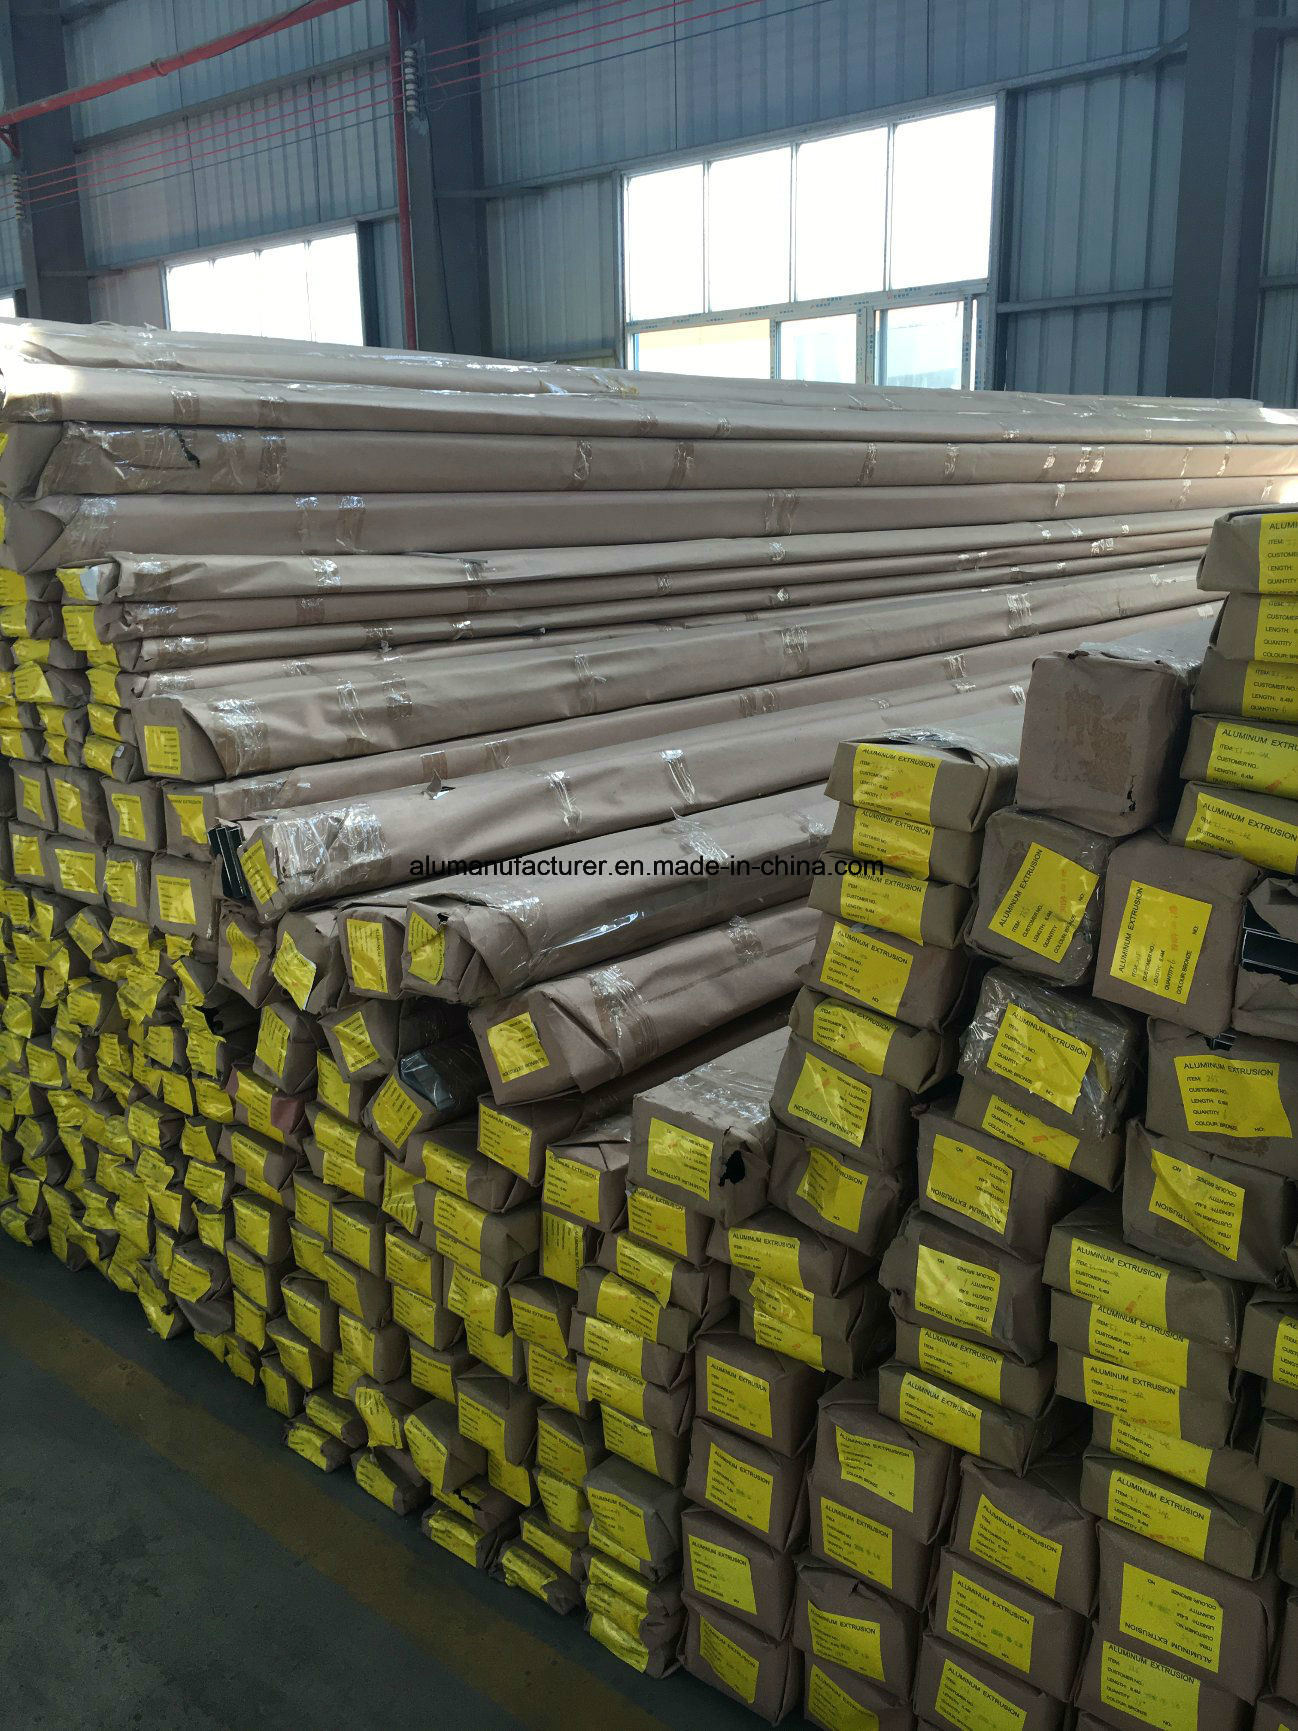 Philippine Aluminium Alloy Extrusion Profile for Door and Window pictures & photos